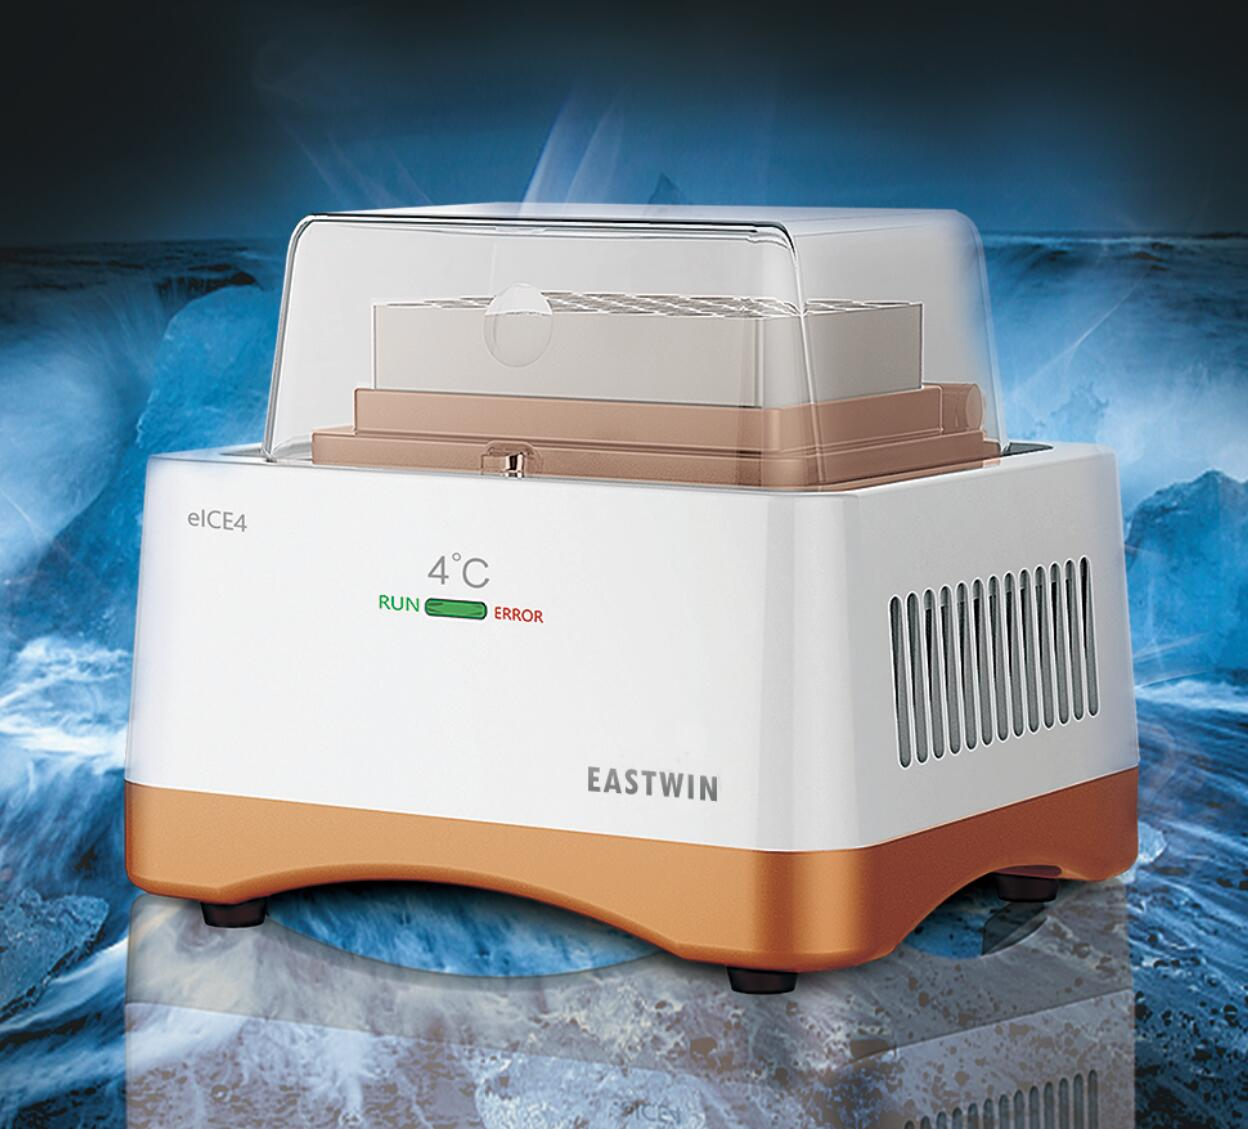 EASTWIN ® eICE4 Electronic Ice Box